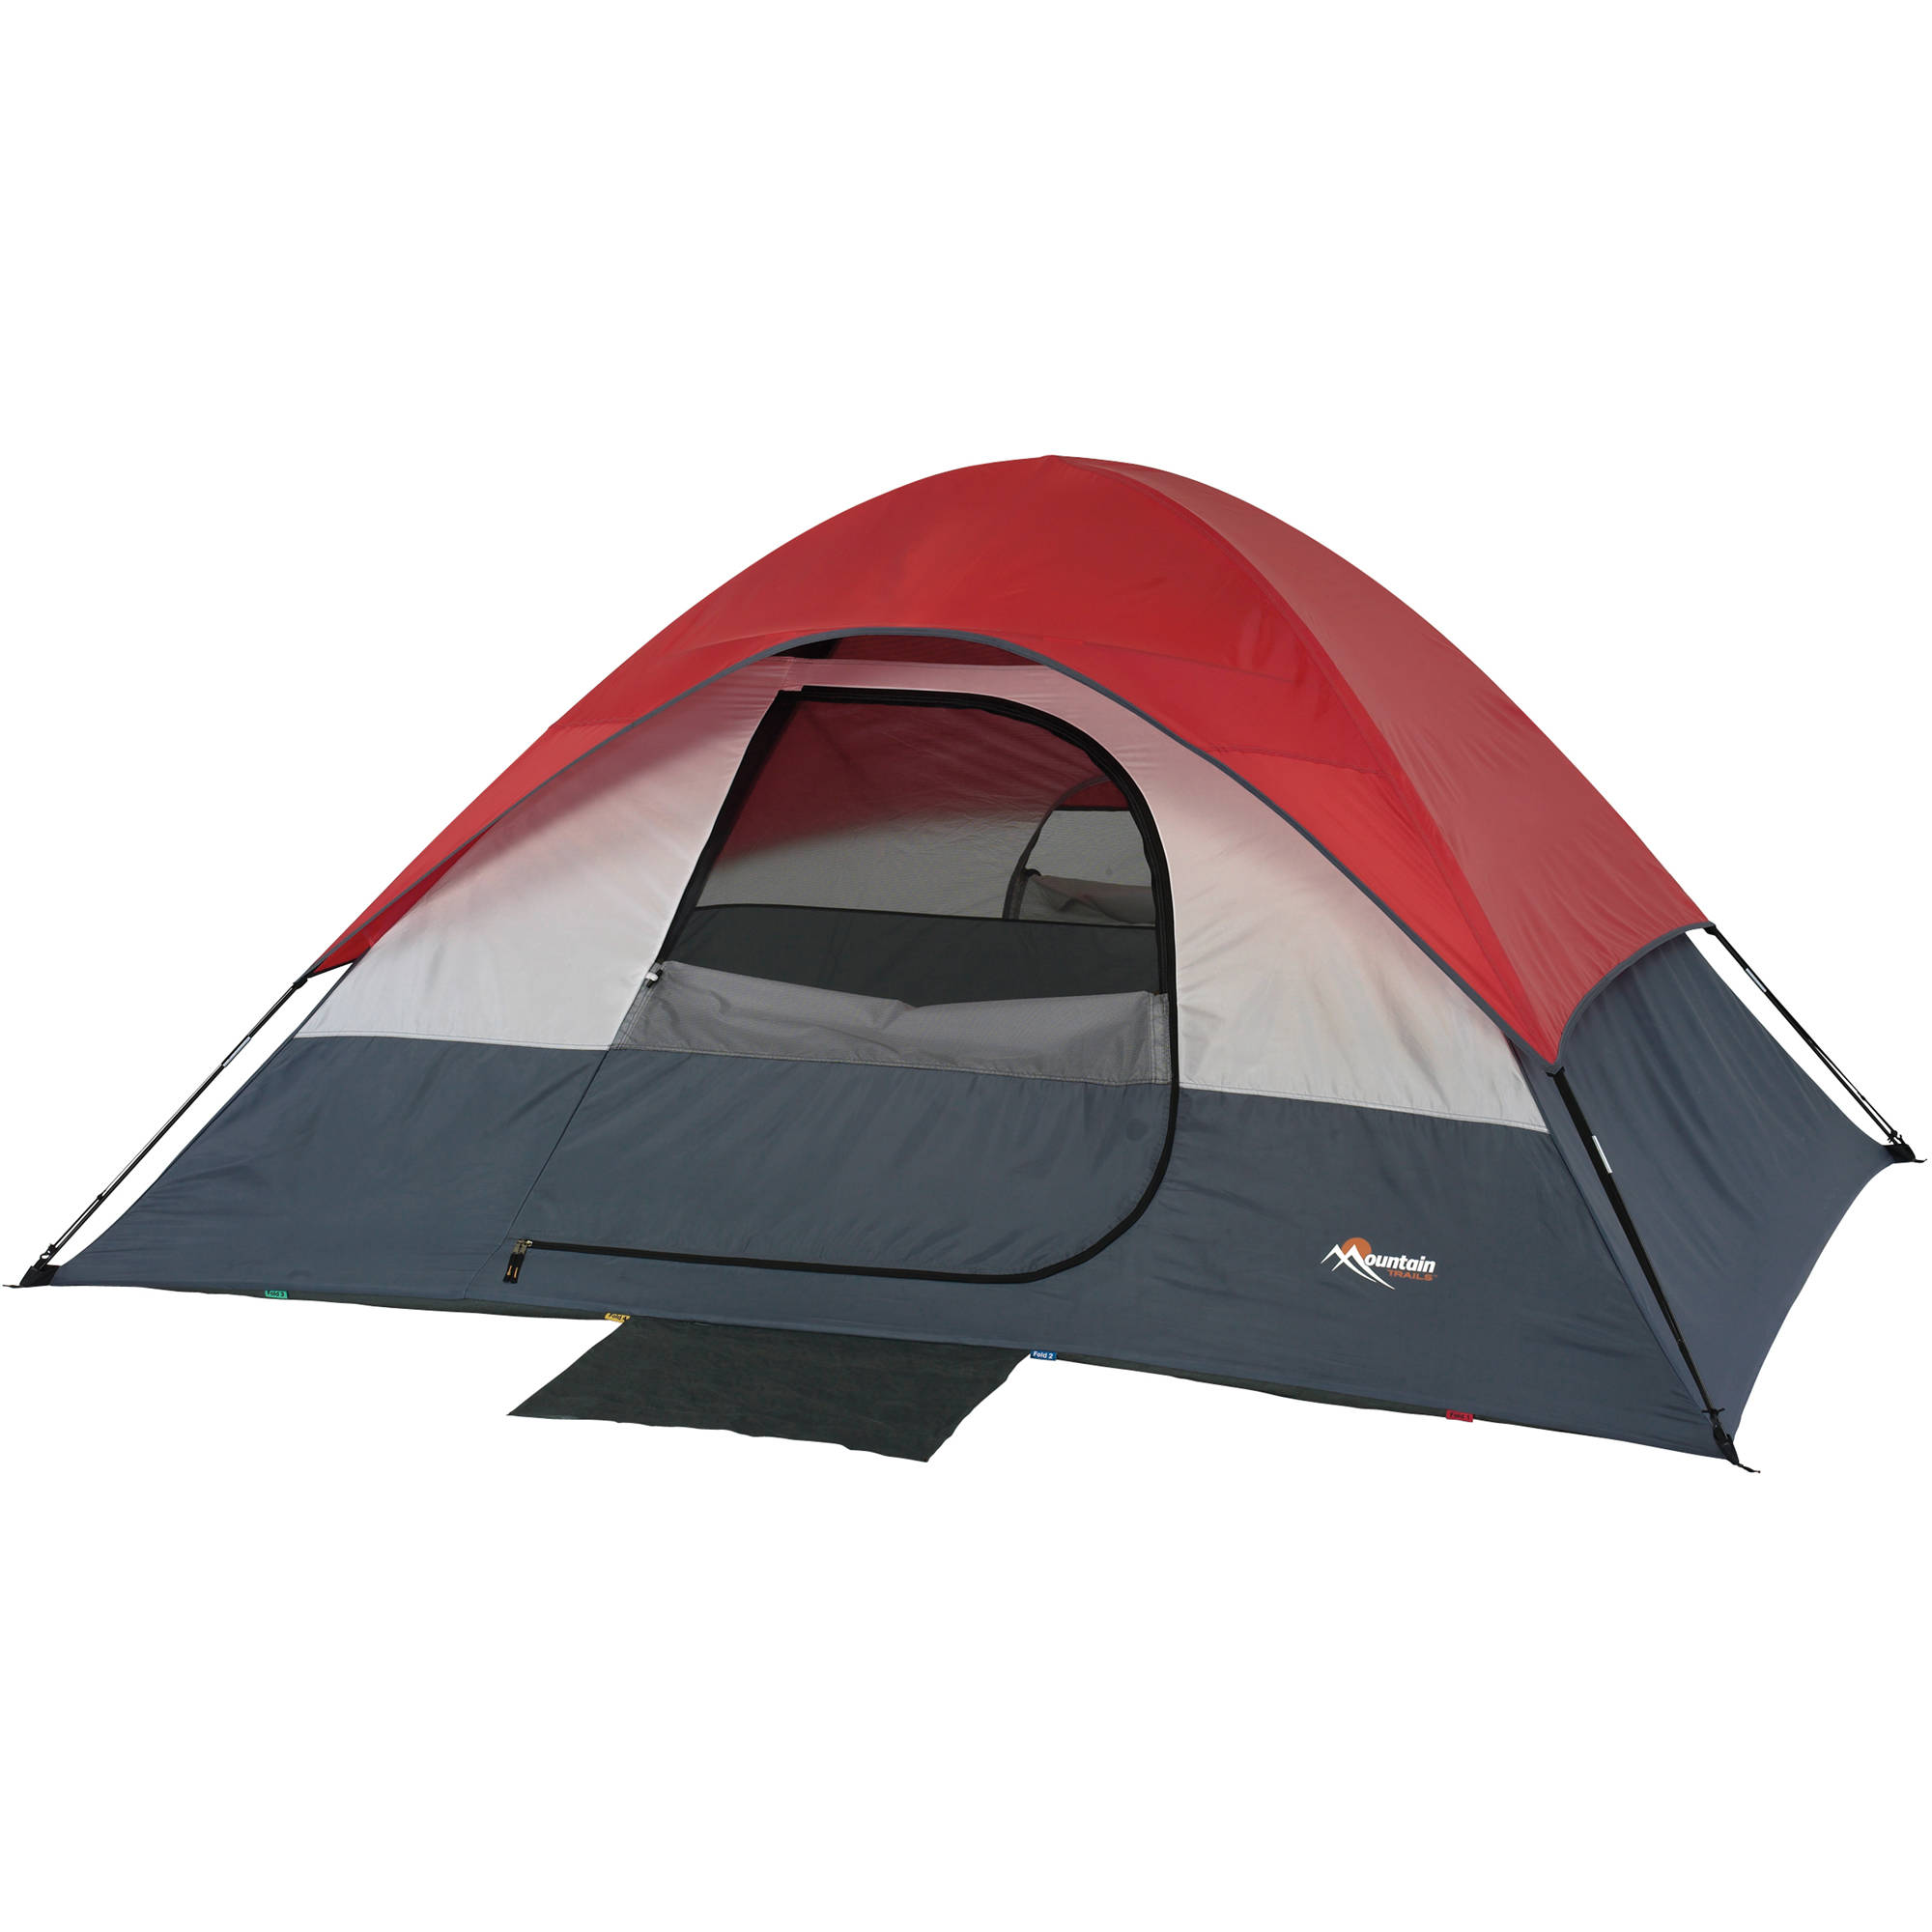 Mountain Trails South Bend 4 Person Dome Tent  sc 1 st  Bu0026H & Mountain Trails South Bend 4 Person Dome Tent 36444 Bu0026H Photo